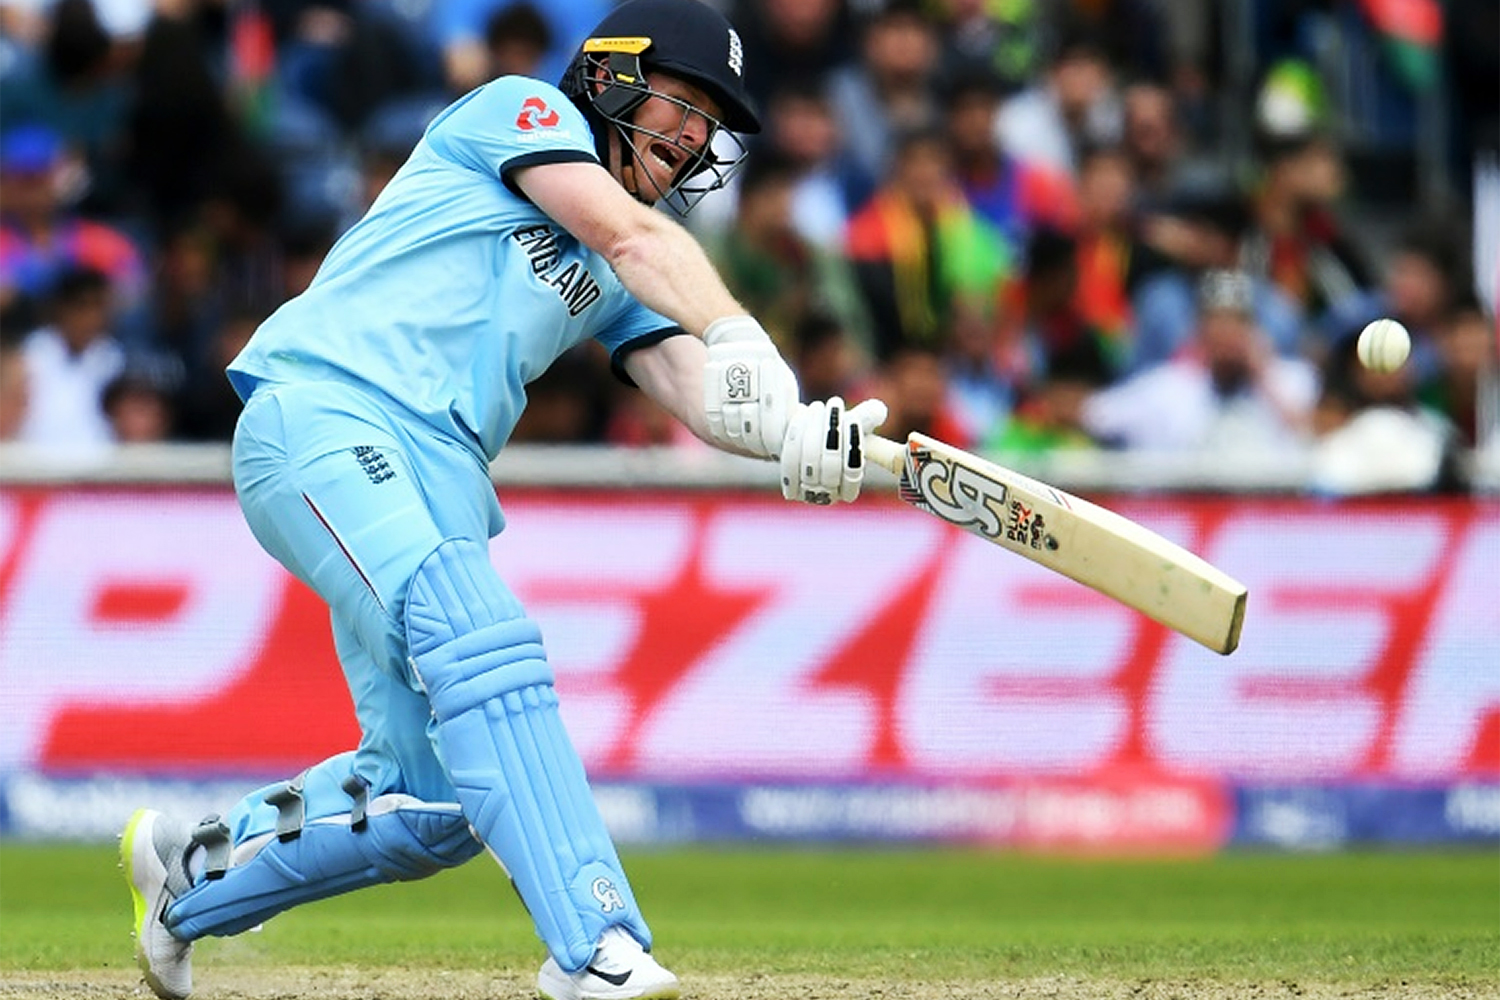 Qualification permutations for England at the Cricket World Cup